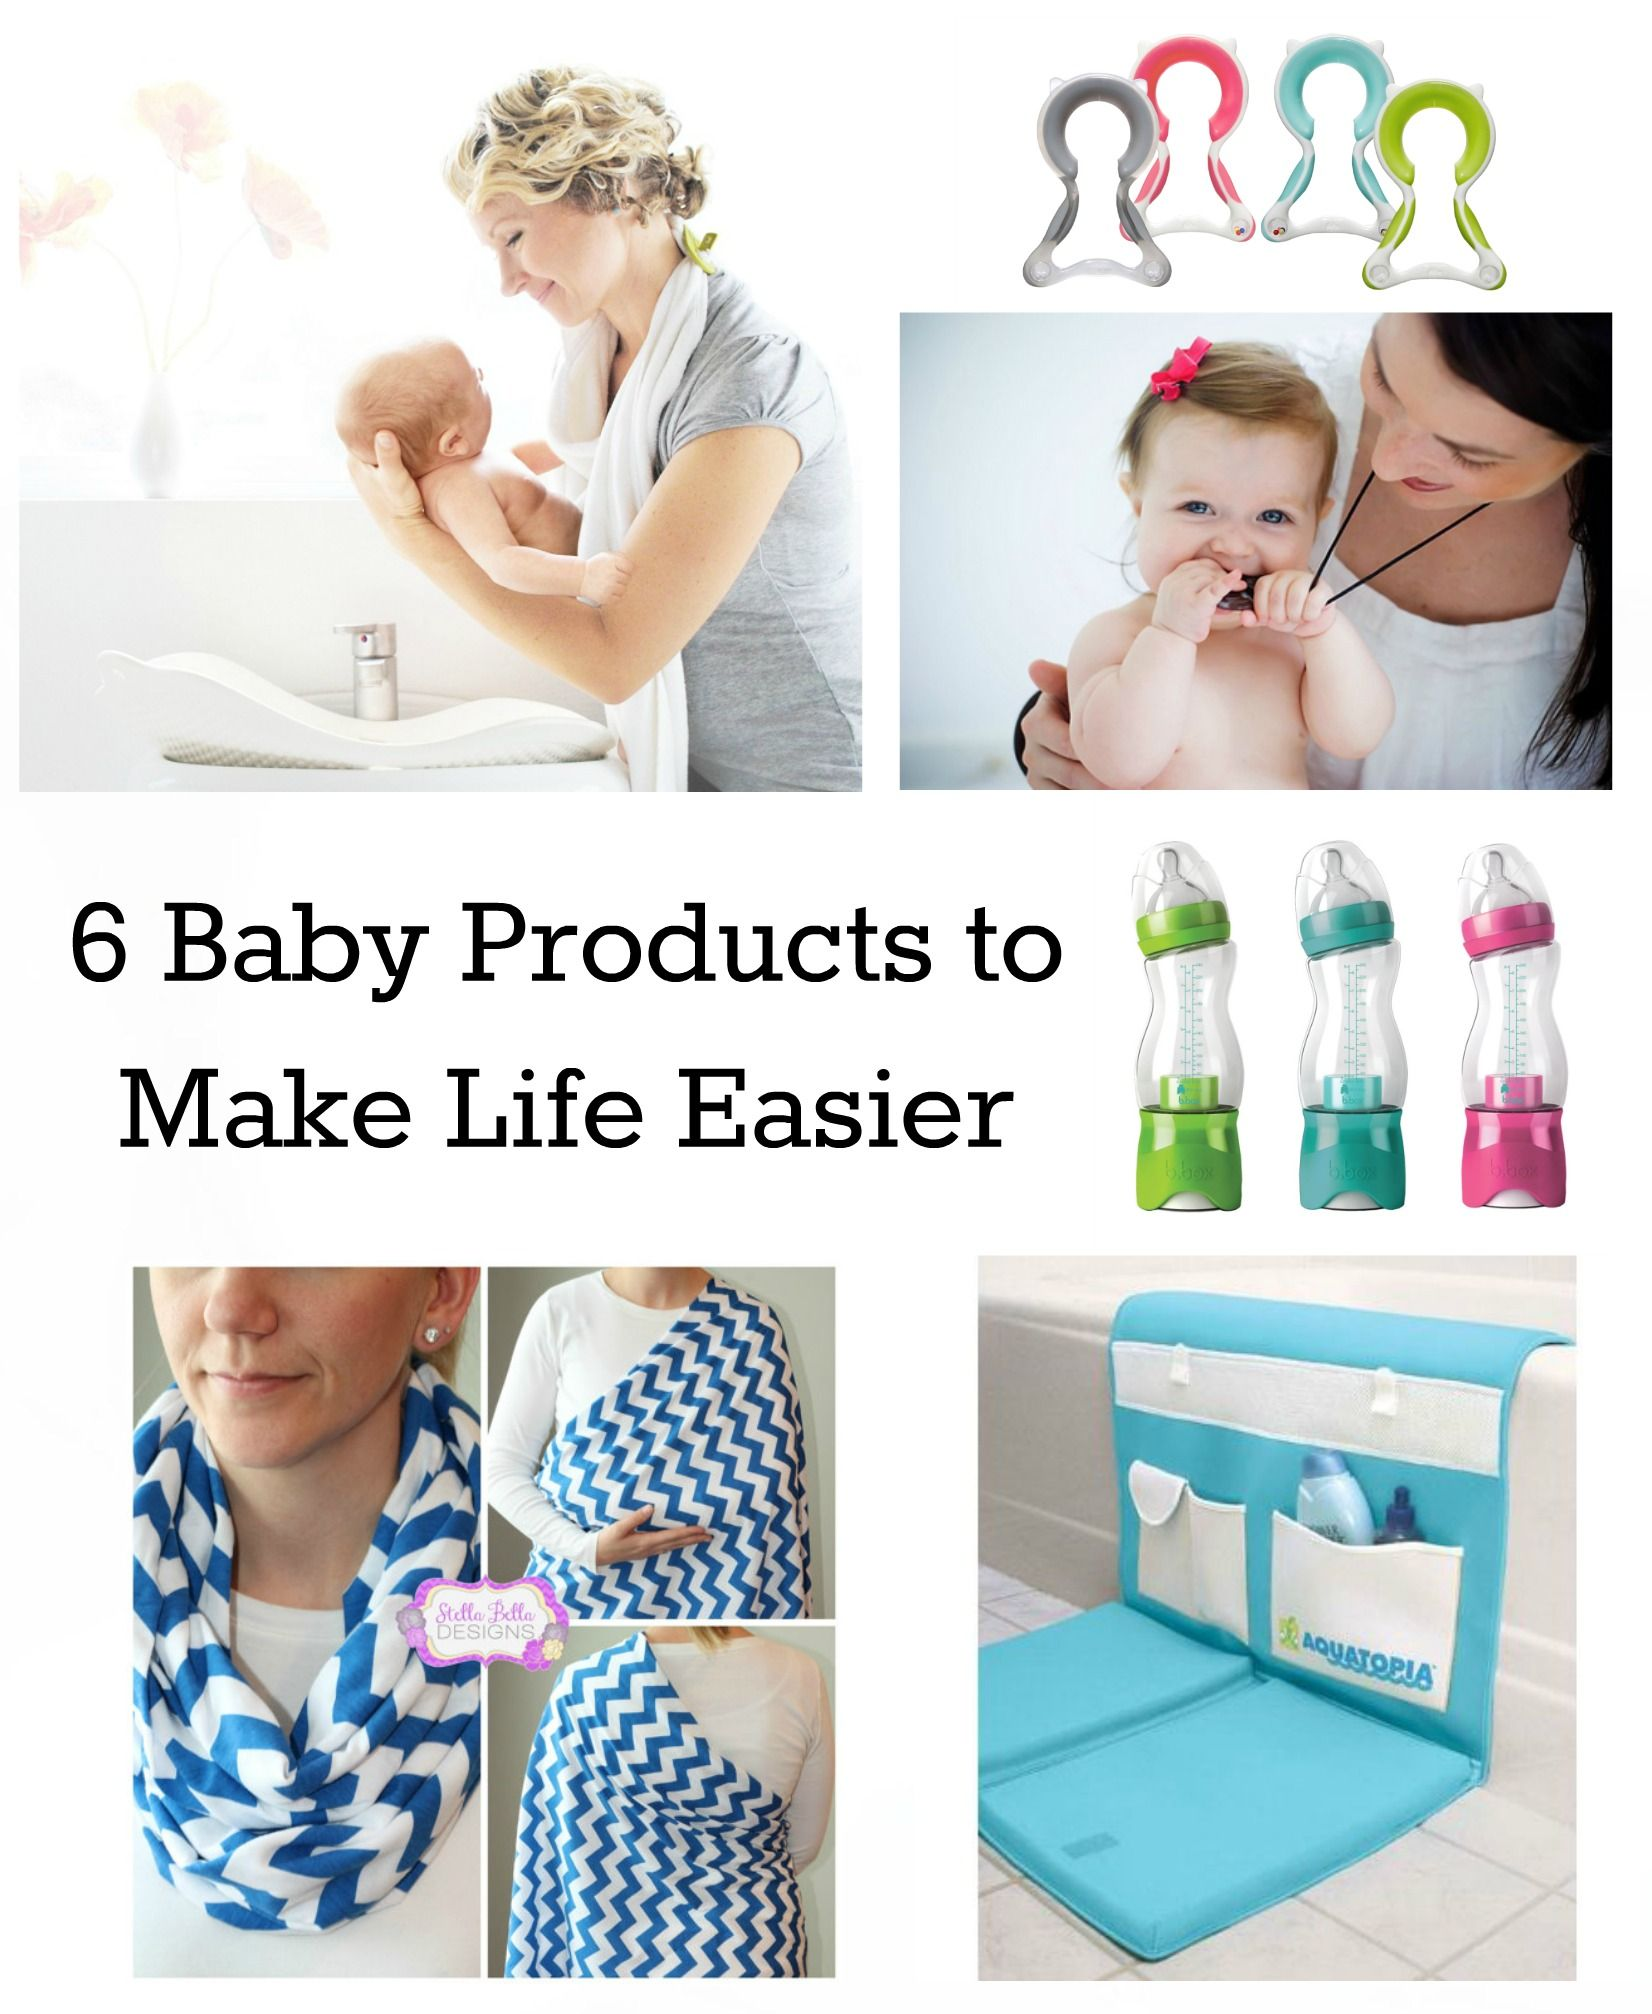 Uncategorized How You Make A Baby 15 genius baby products youll wonder how you lived without without